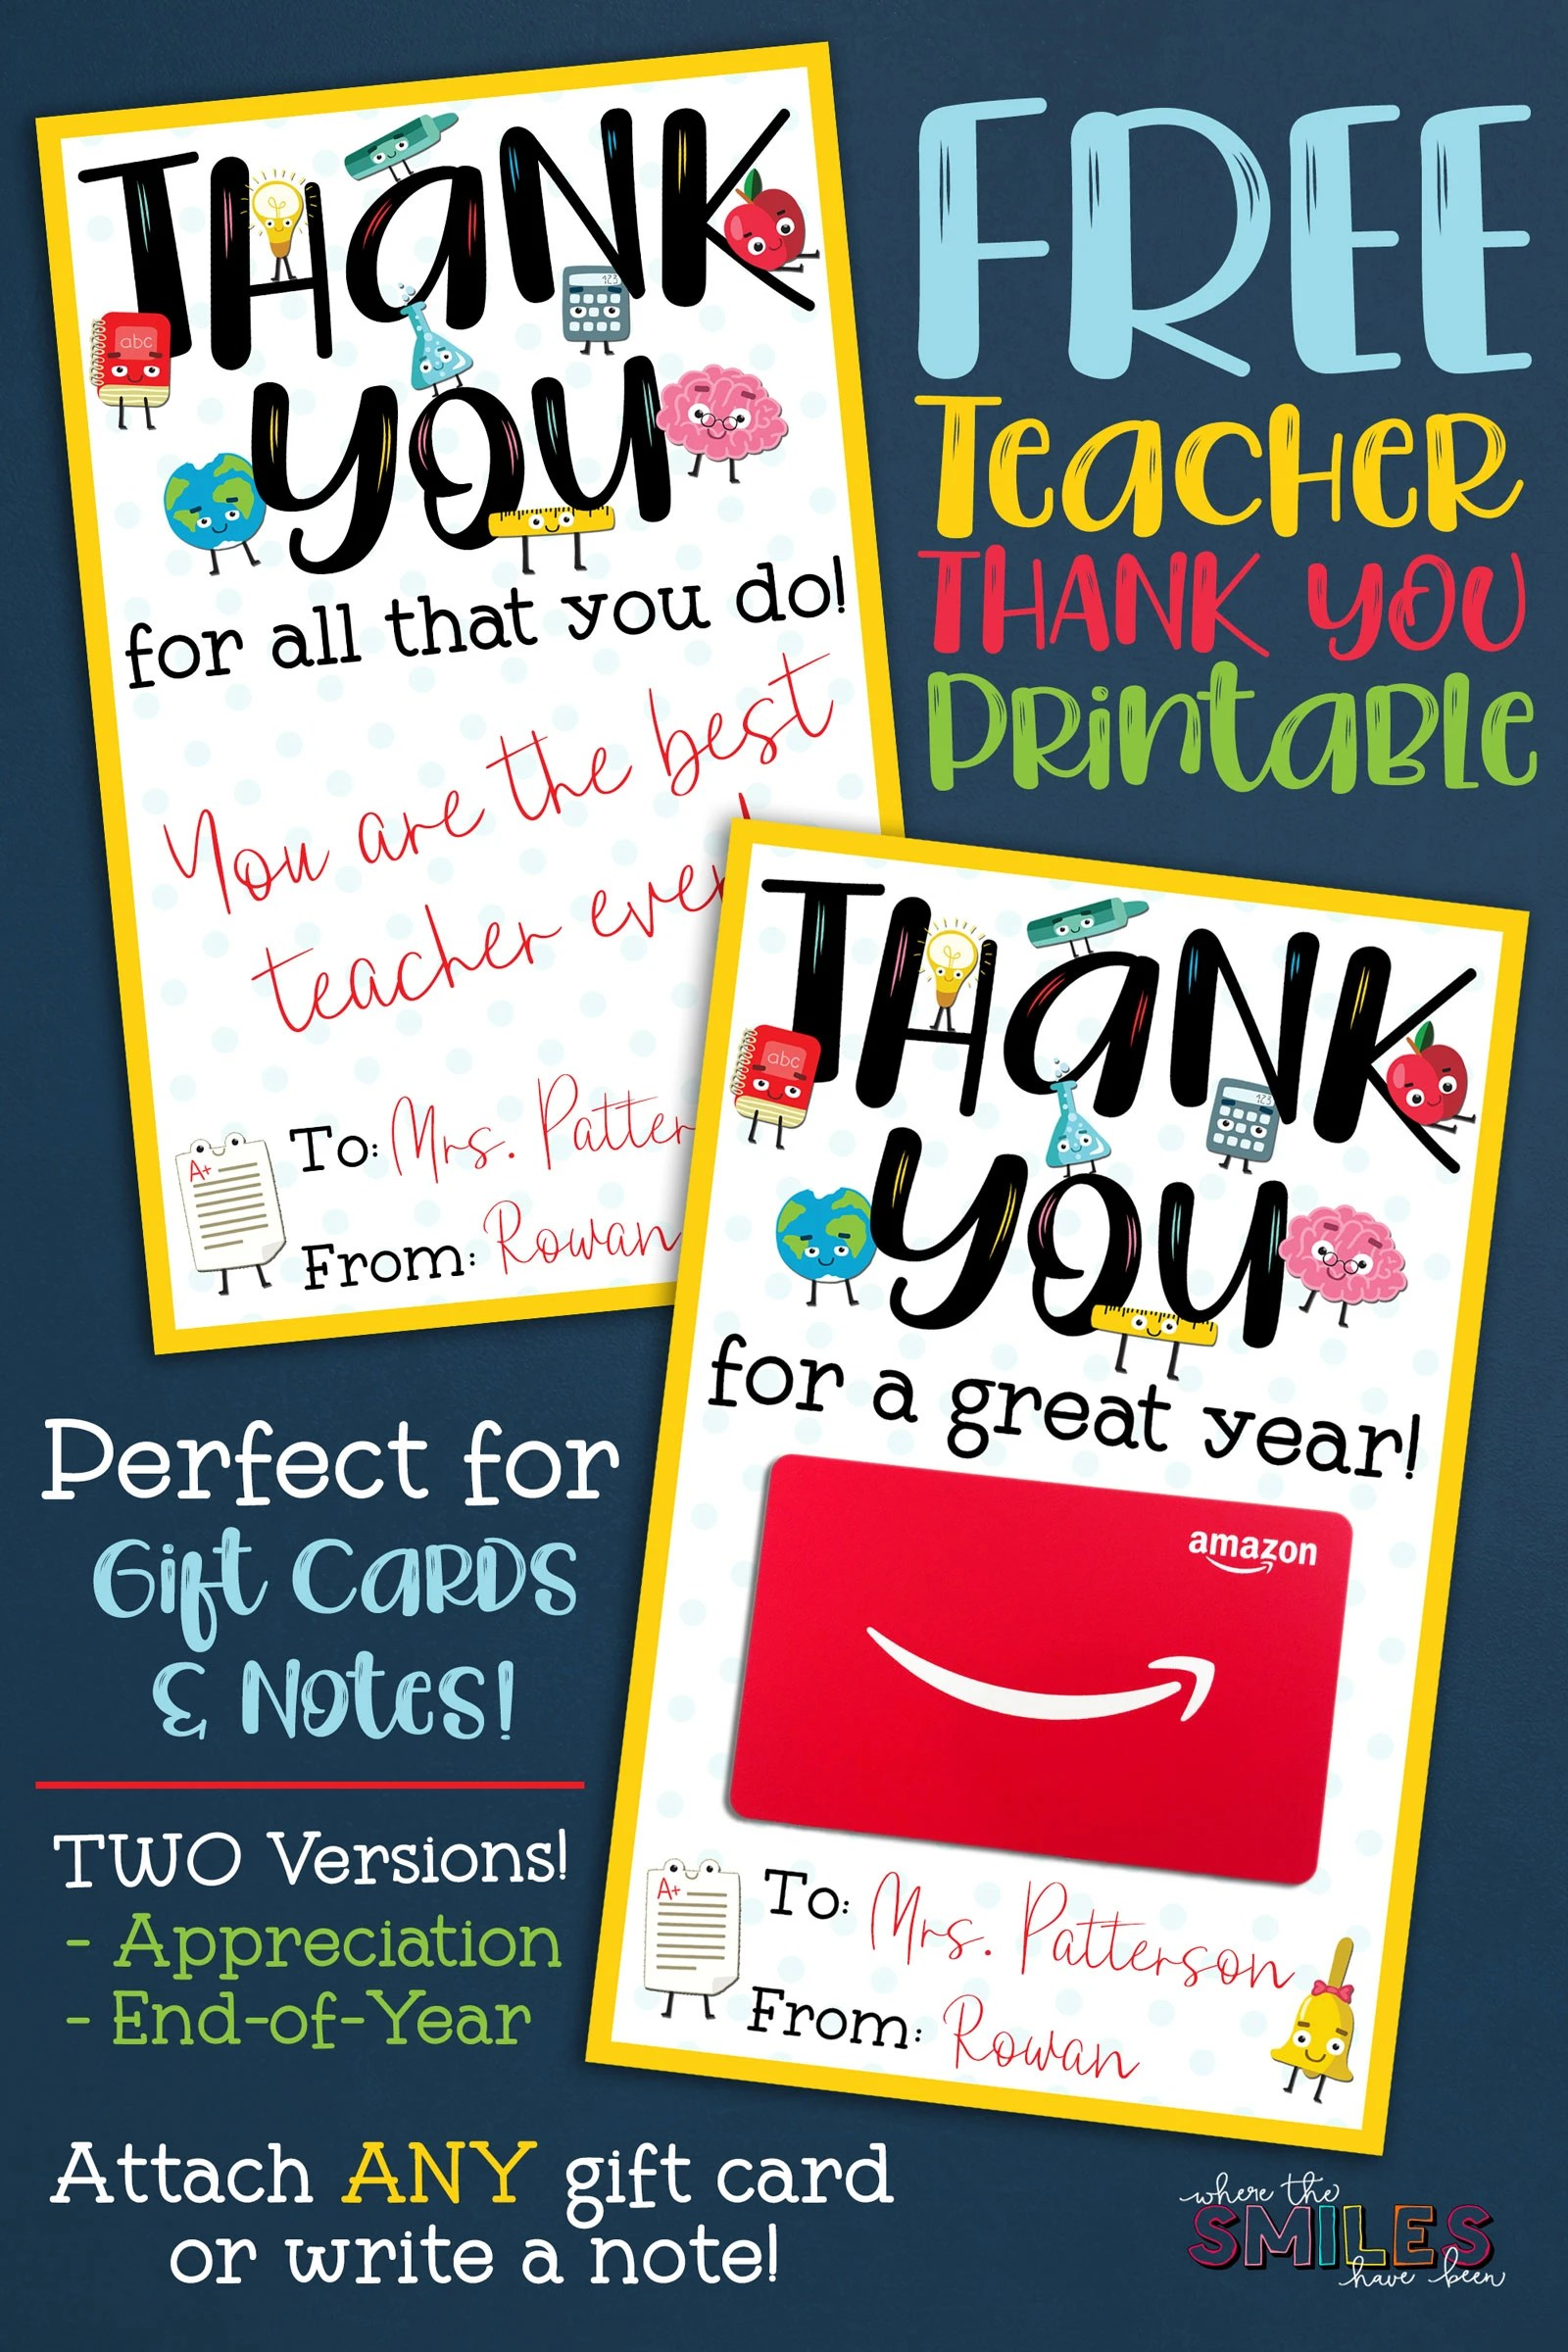 picture about Classroom Rules Printable called Clroom Artwork Instructor Appreciation Clroom Legal guidelines Conclusion of